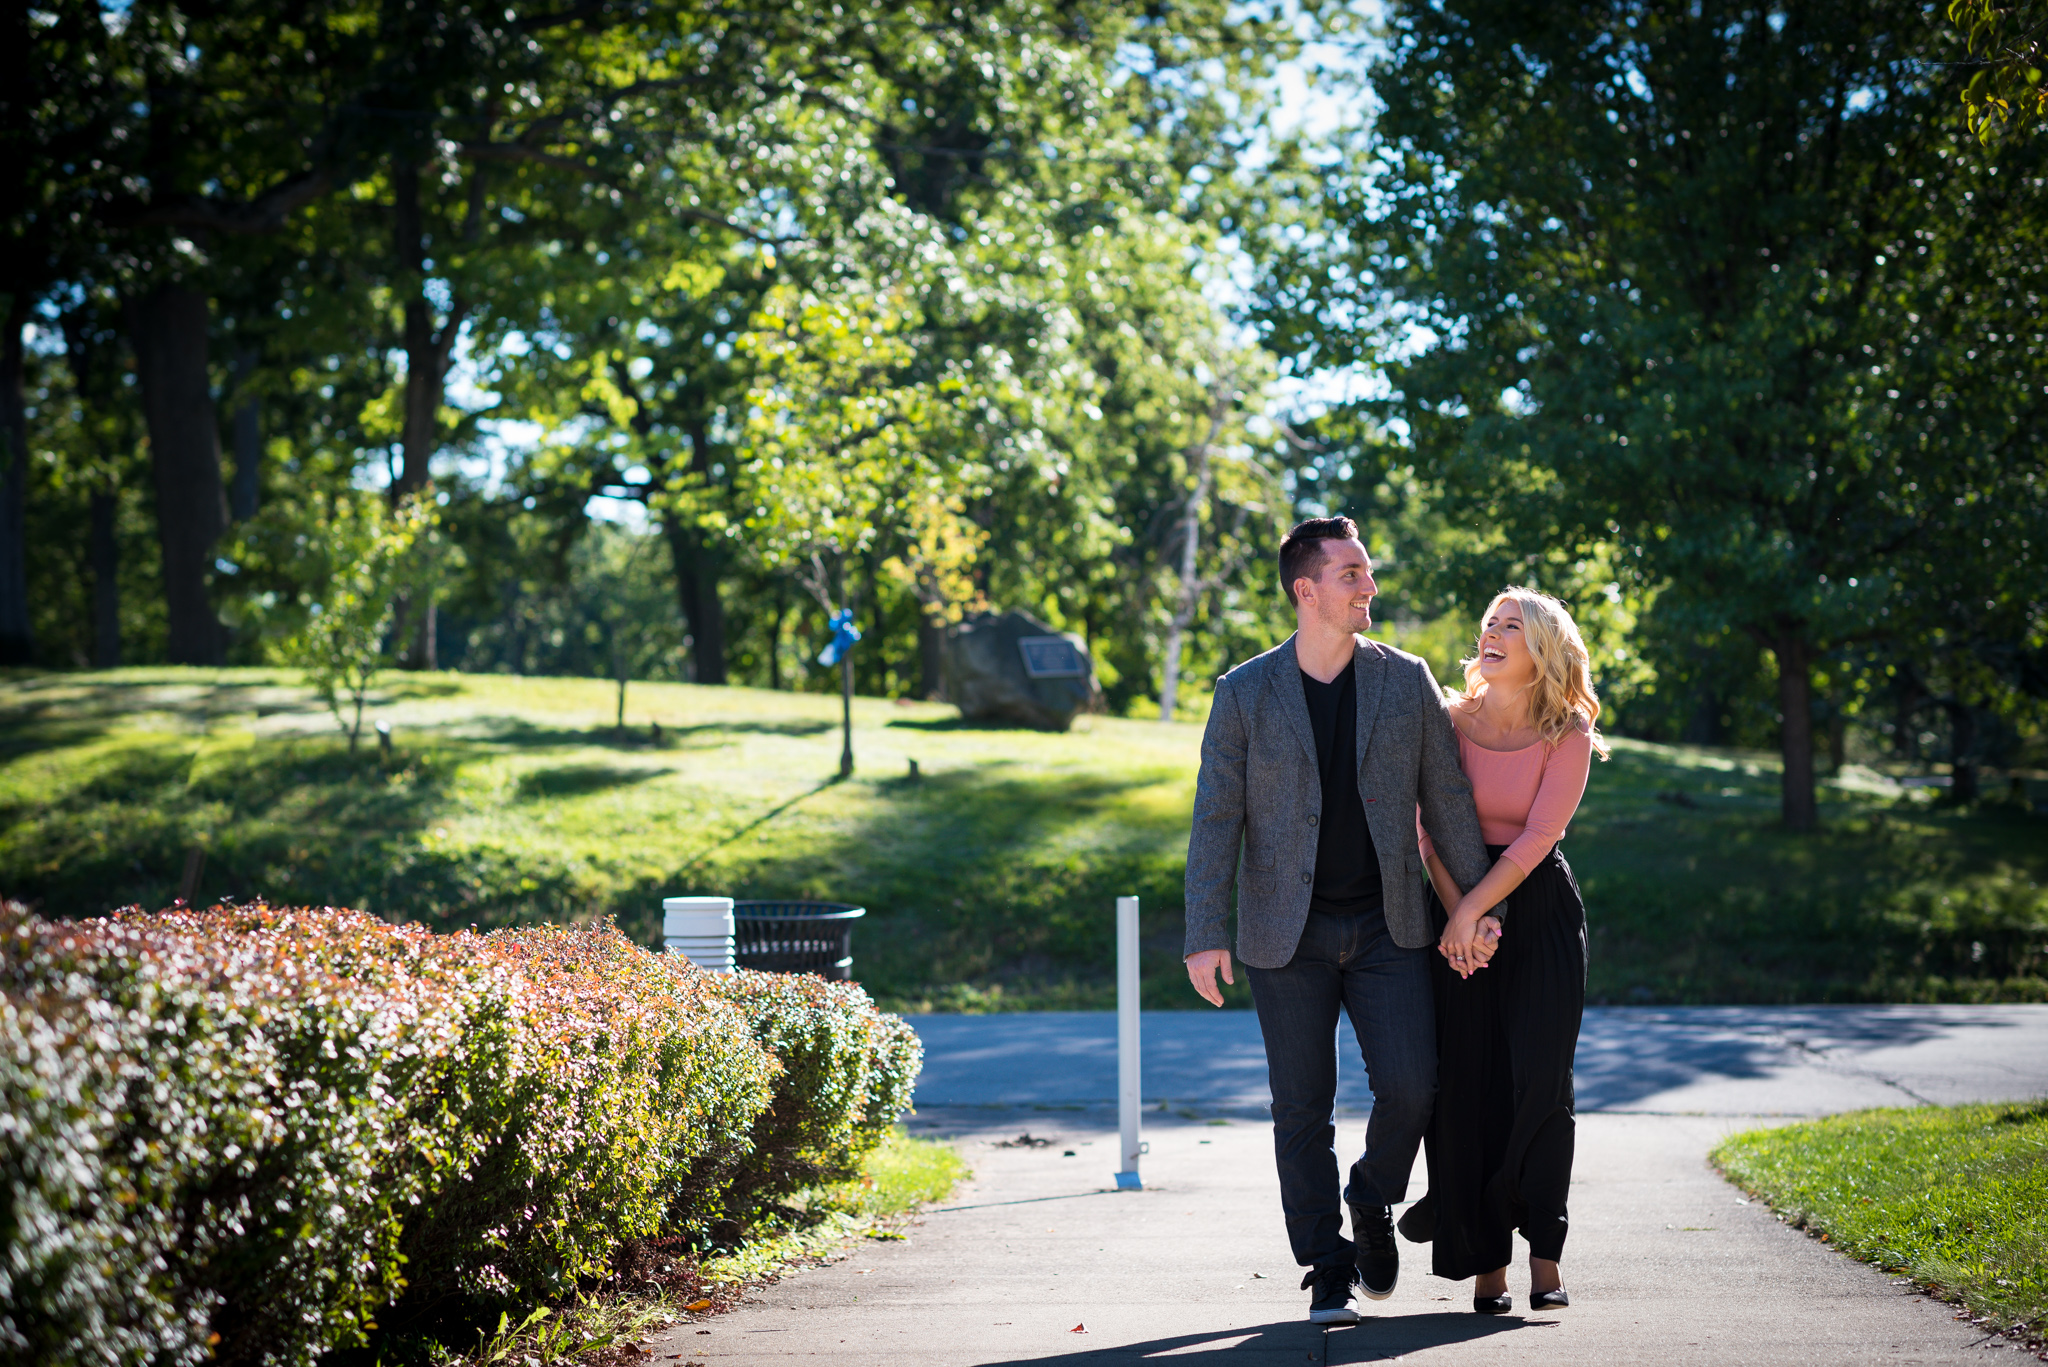 Mindy-Engagement-photography-wedding-photographer-northeast-PA-Scranton-Poconos-2.jpg